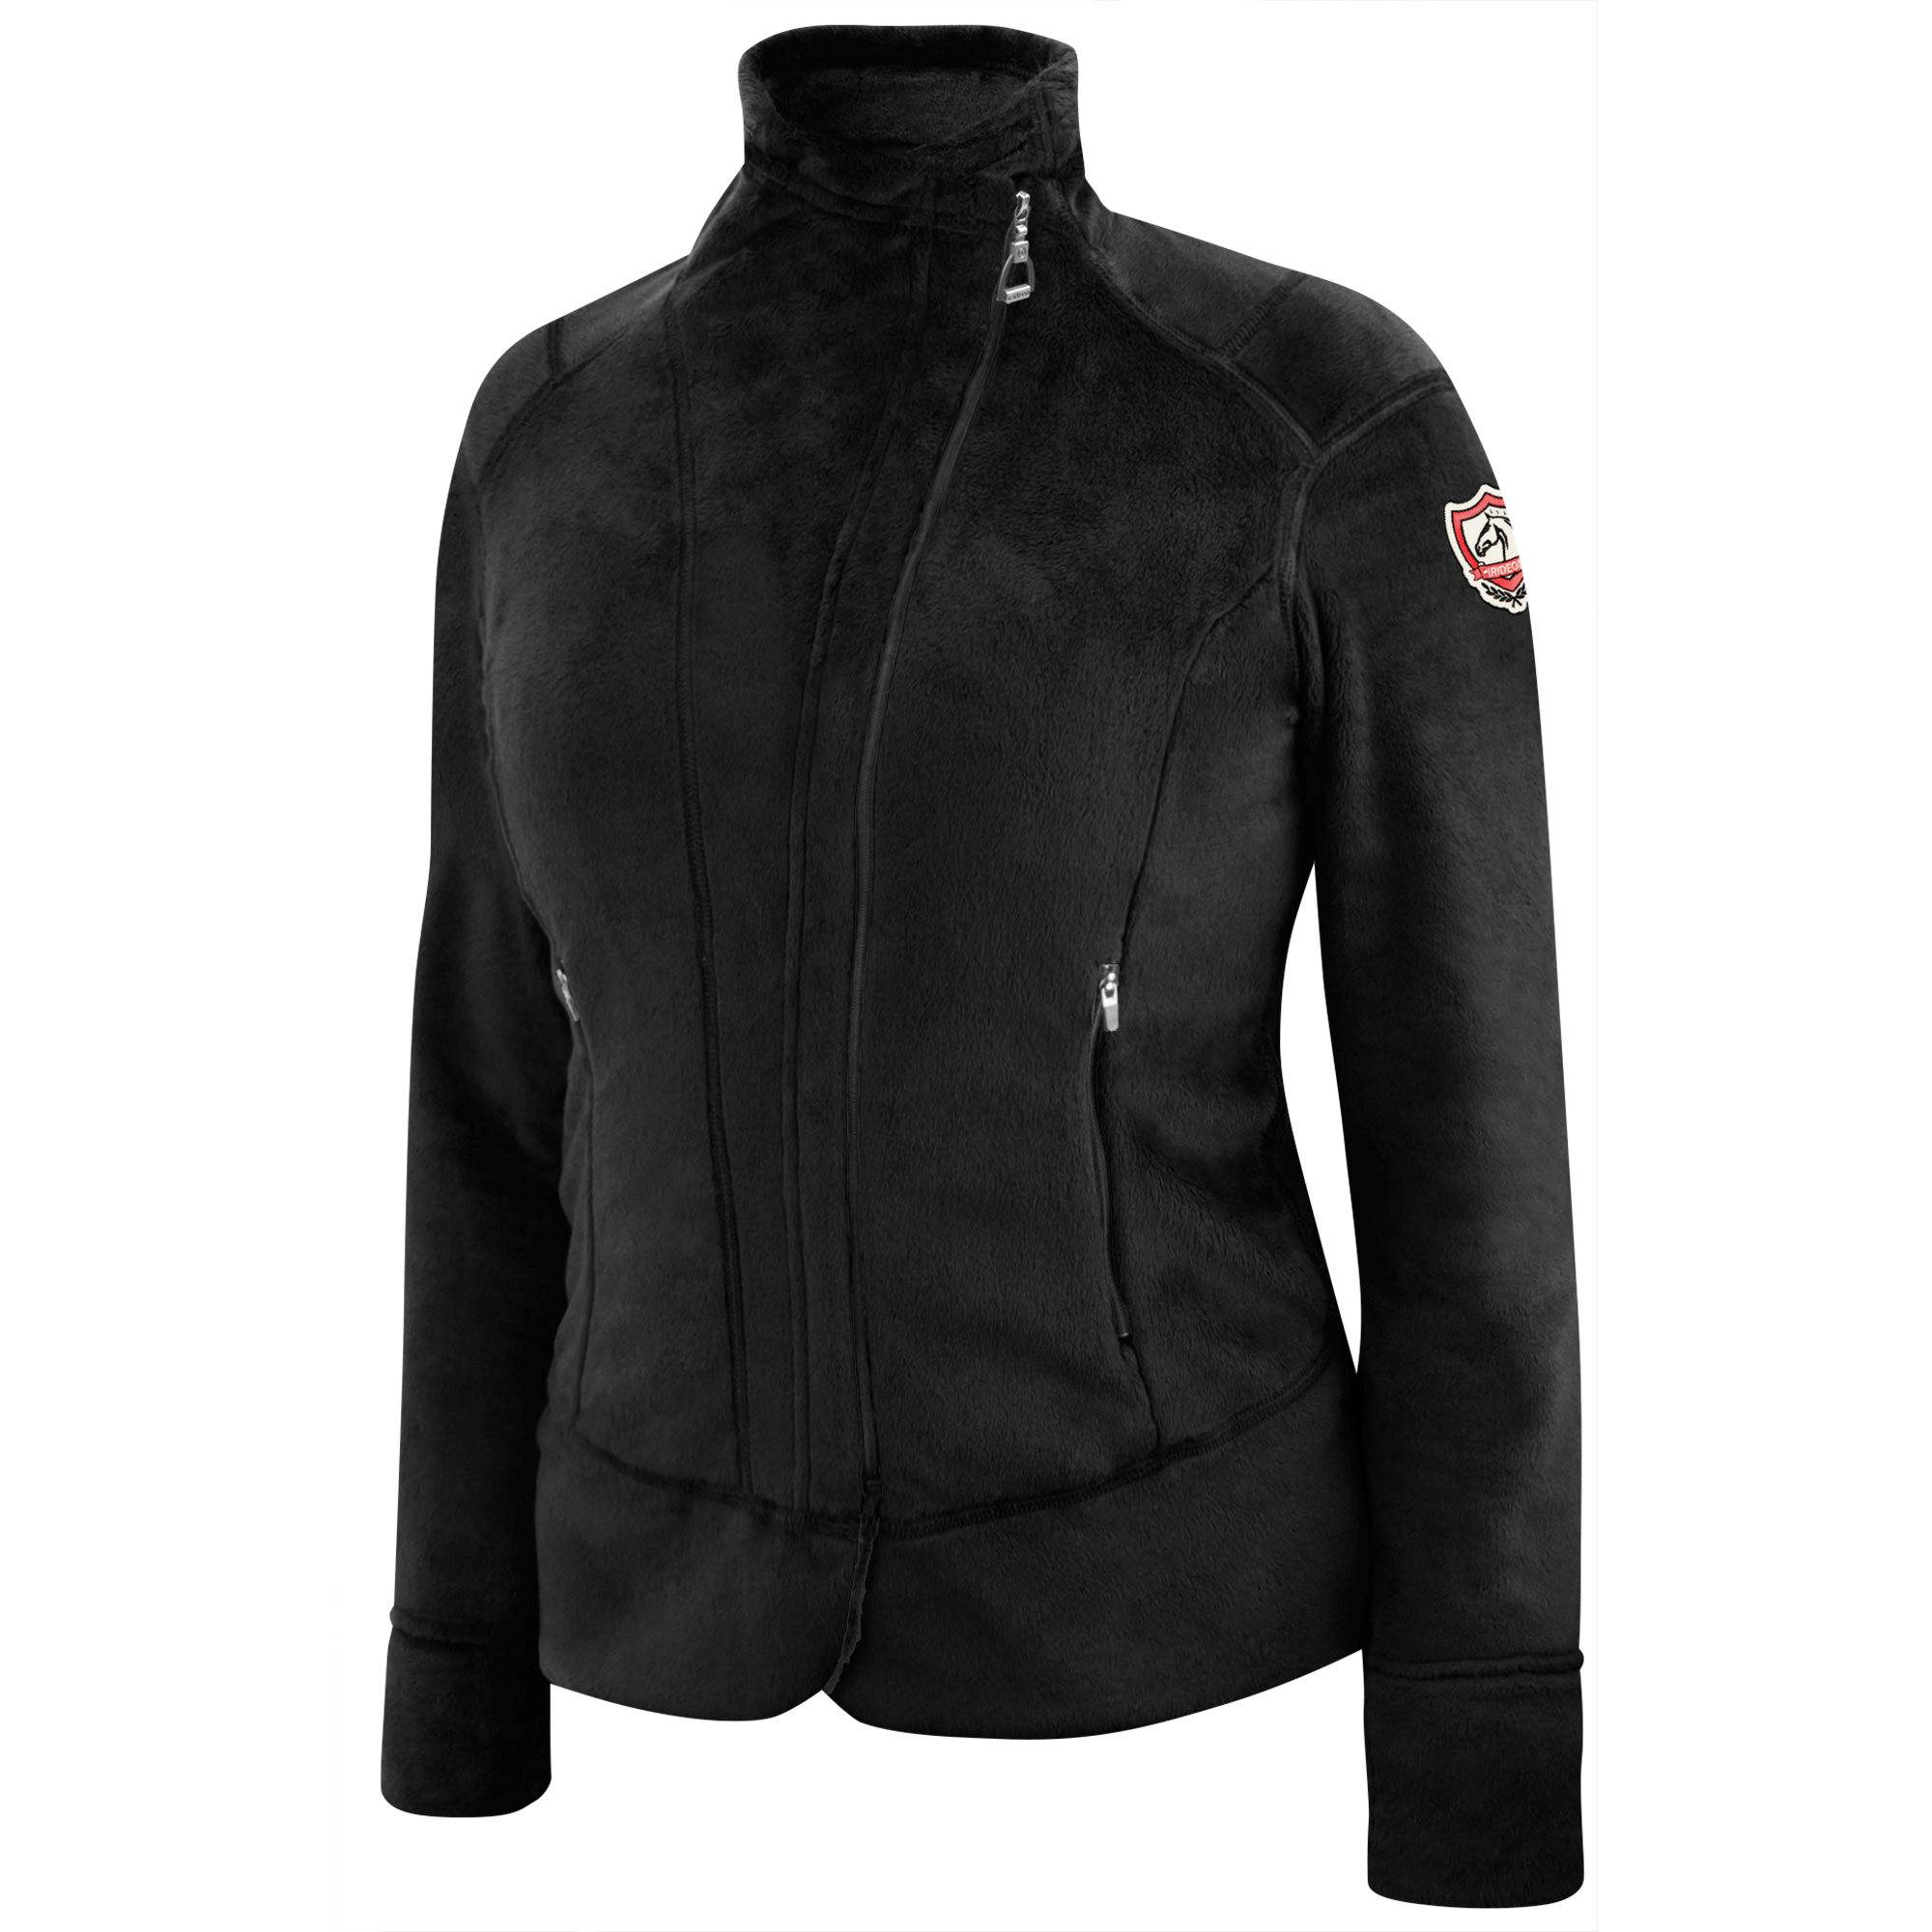 Irideon Icelandic Fleece Jacket - Ladies